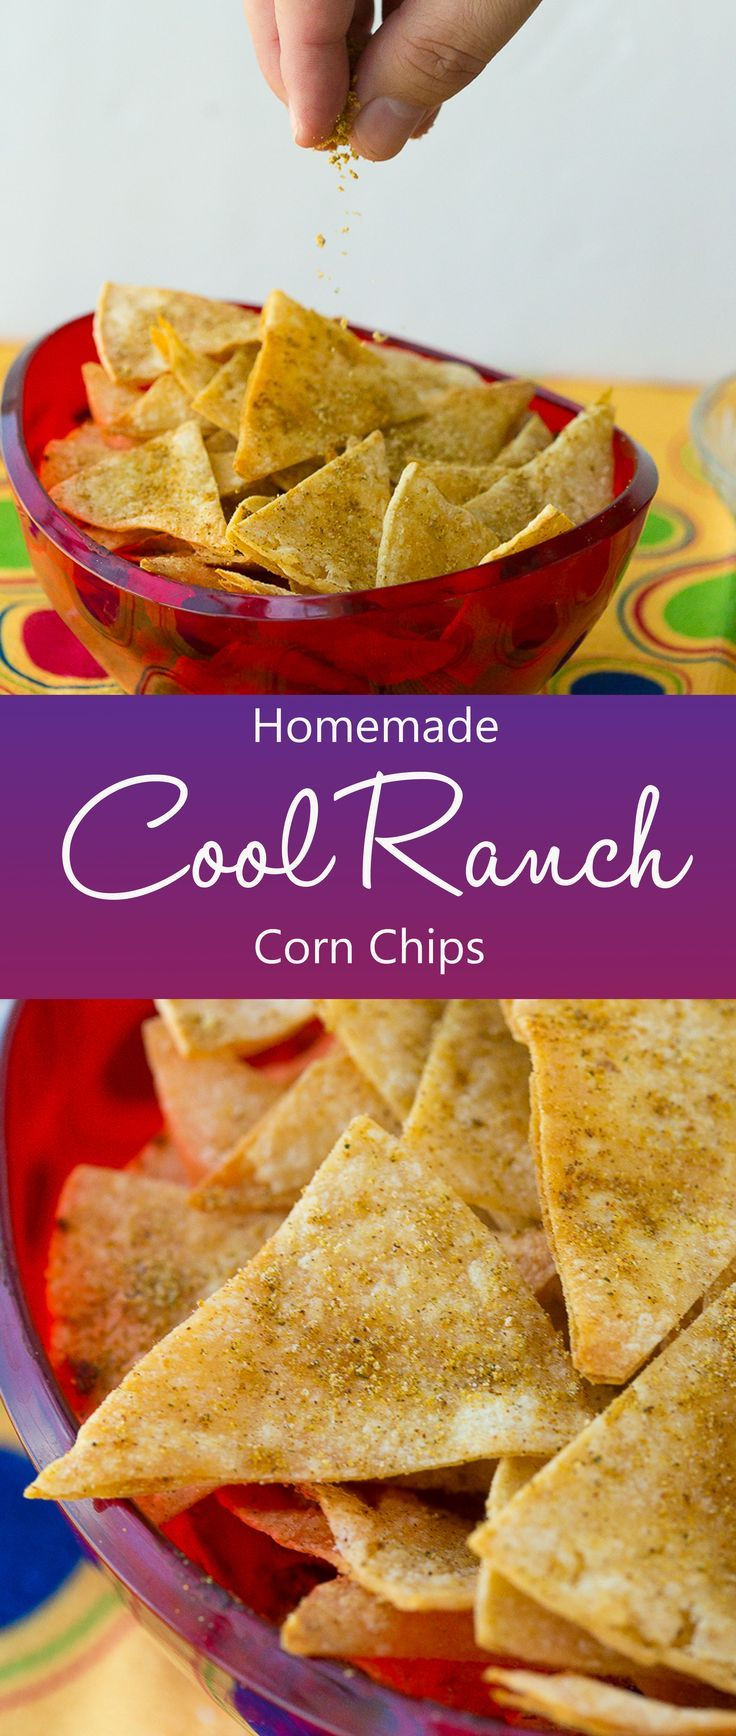 Healthy Salty Snacks For Weight Loss  Best 25 Potato chips homemade ideas on Pinterest